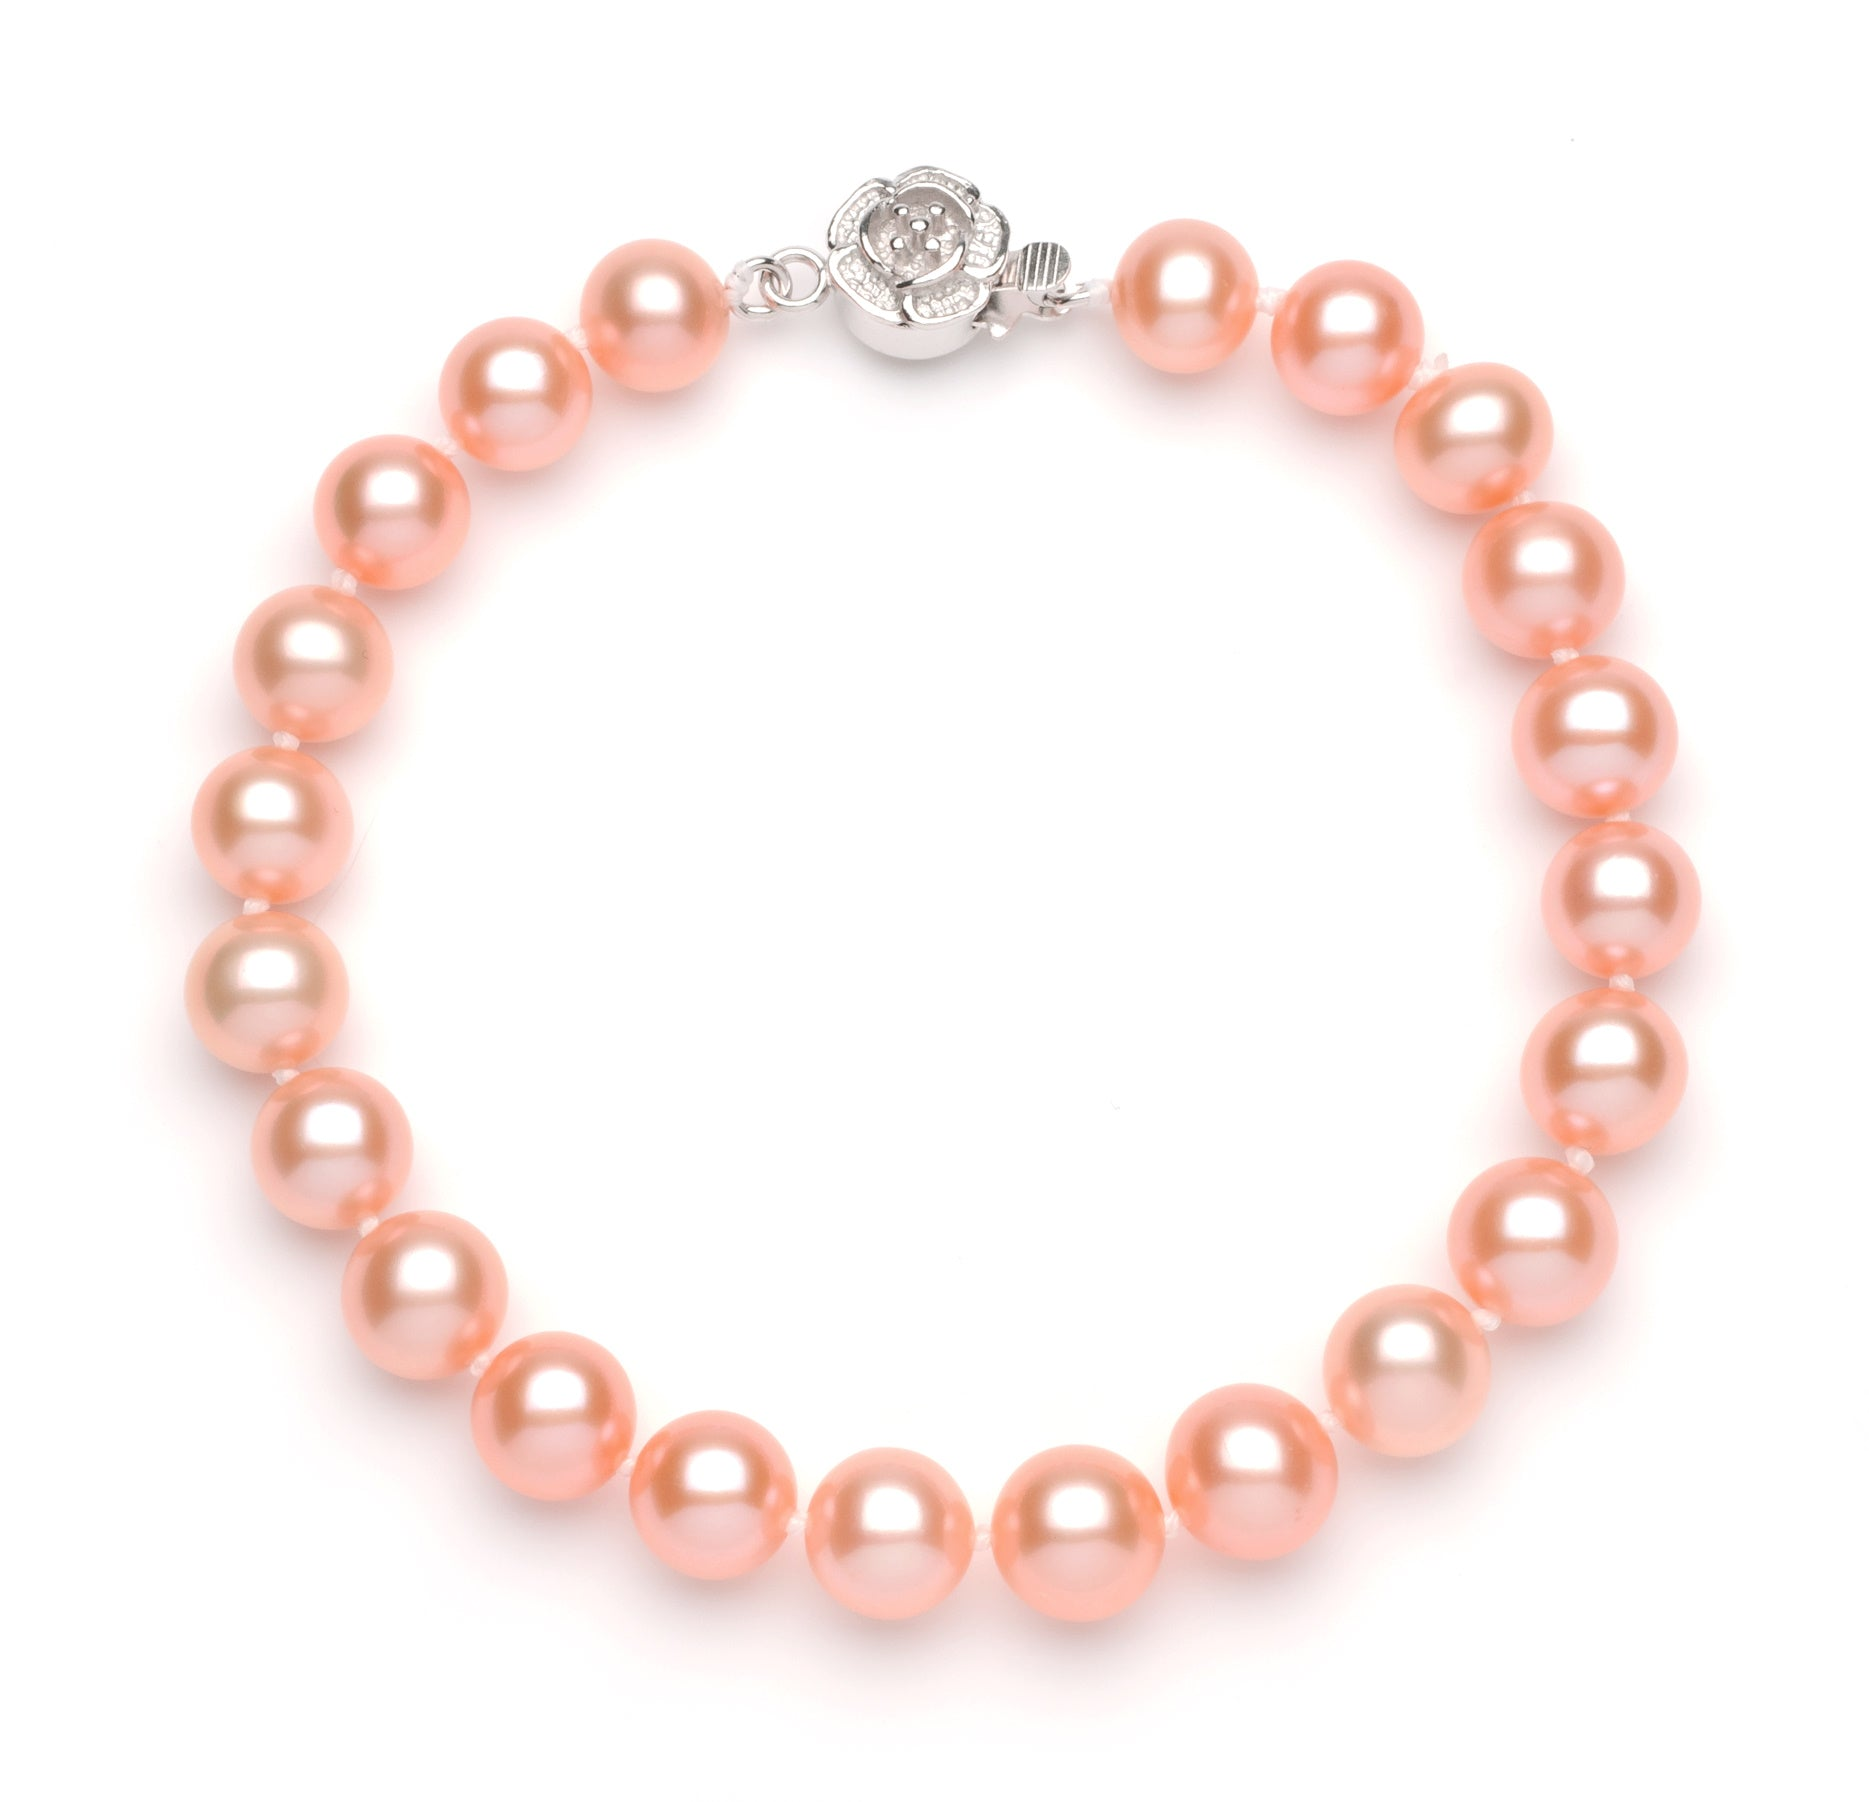 Full Set of 8.0-9.0 mm Pink Freshwater Pearls